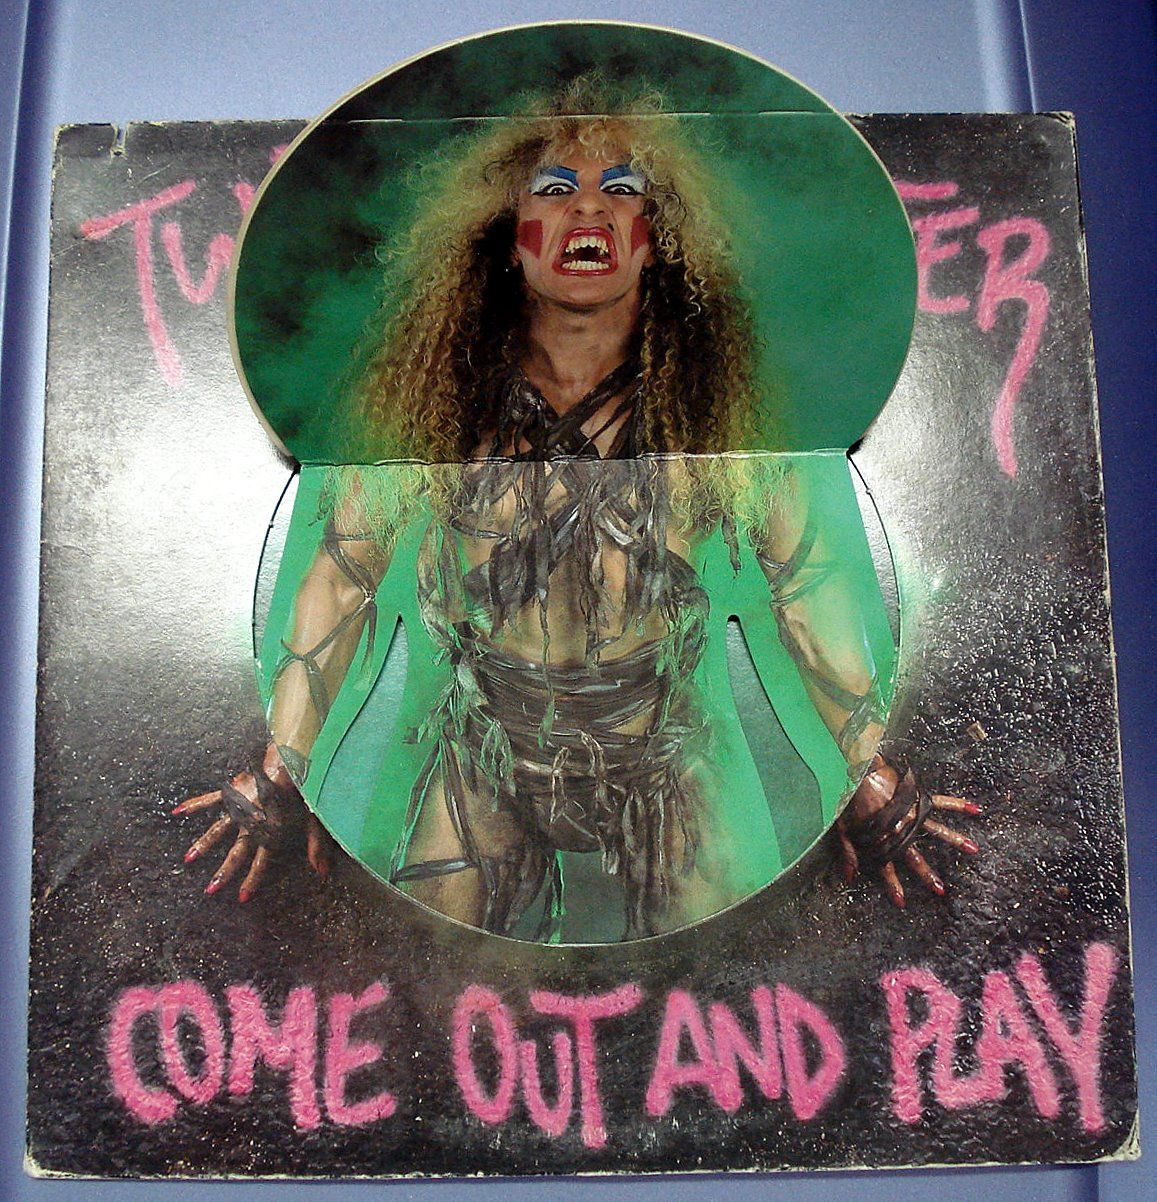 Risultati immagini per twisted sister come out and play